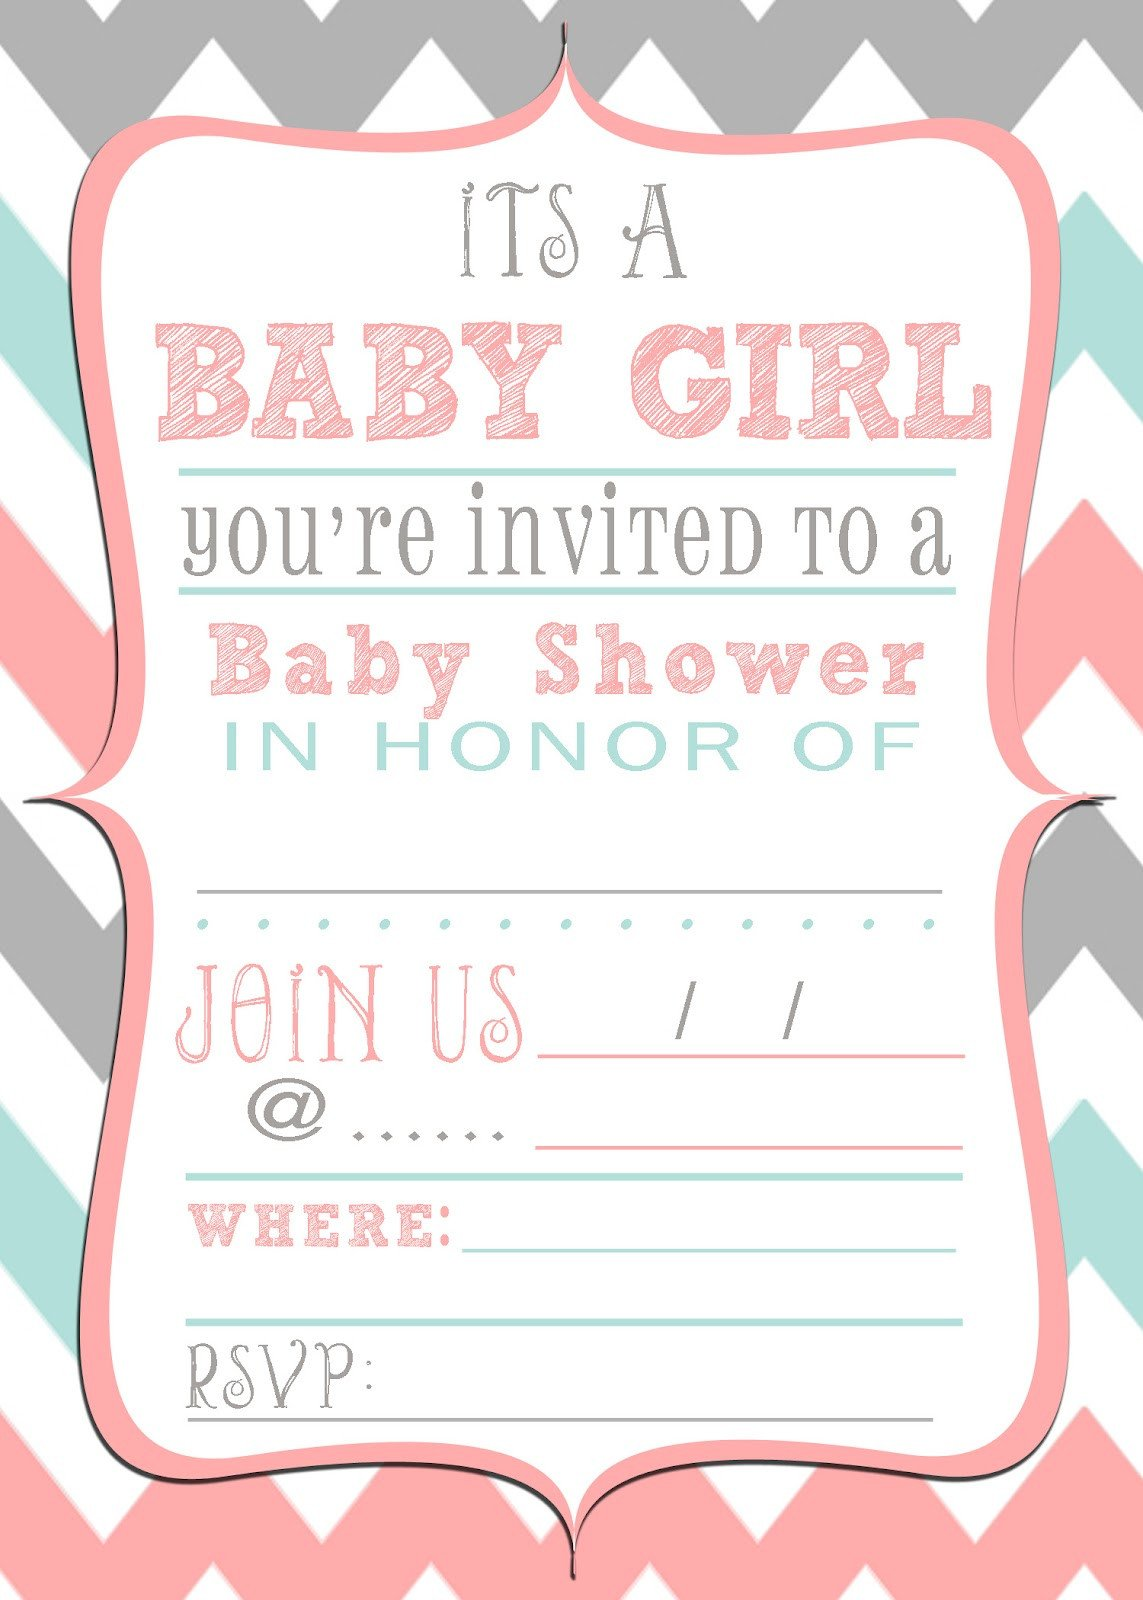 Baby Shower Invitation Free Template Mrs This and that Baby Shower Banner Free Downloads